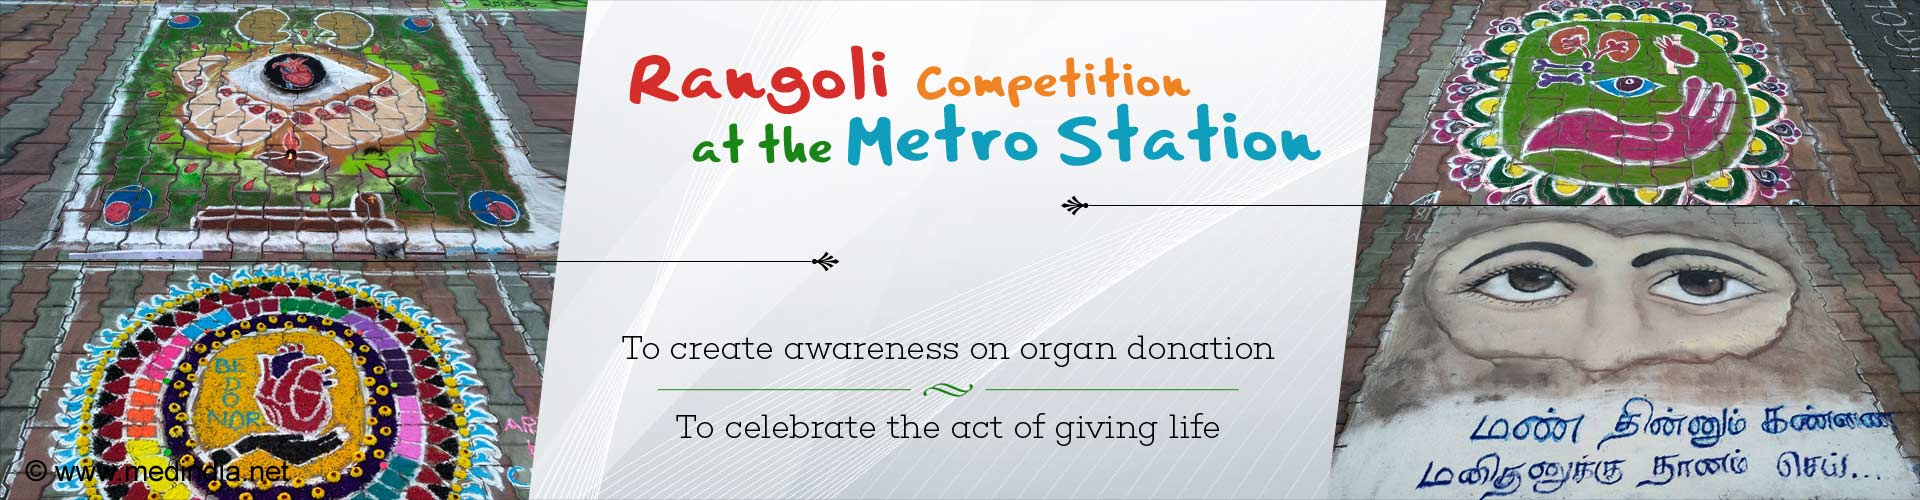 Organ Donation Awareness with Colors and Creativity at the Chennai Metro Station